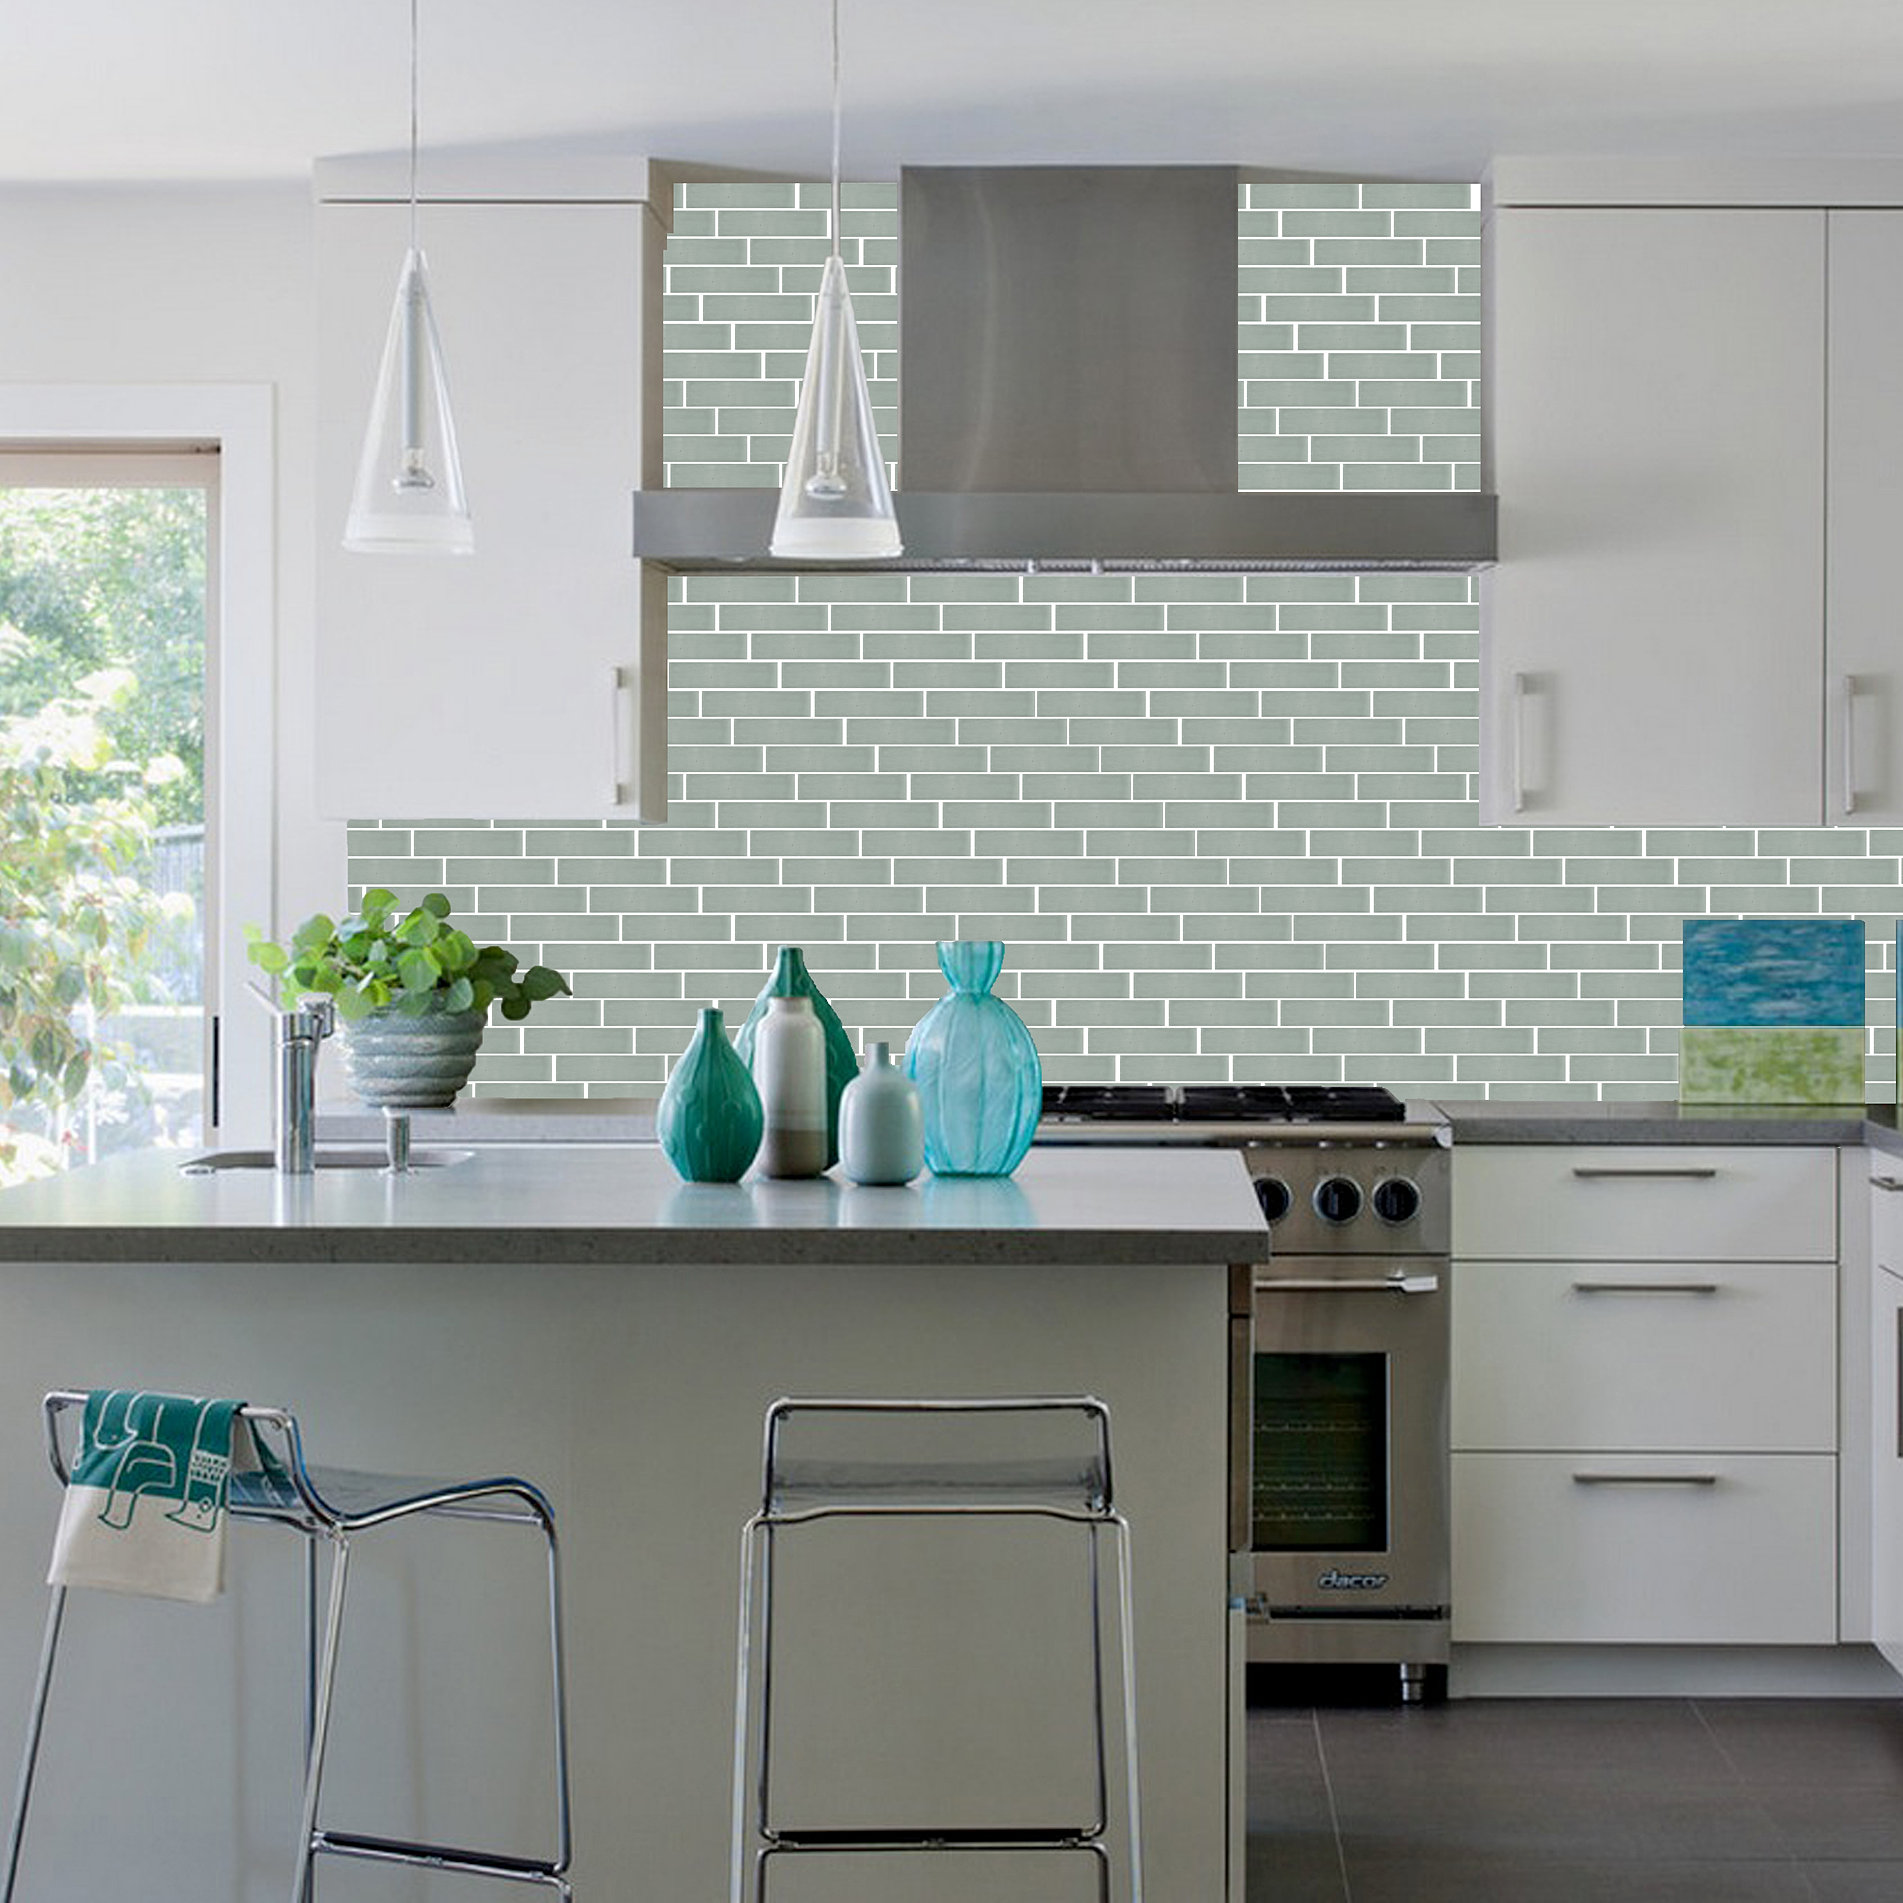 Kitchen Wall And Floor Tiles Tuggerah Tiles Kitchen Wall And Floor Tiles Tuggerah